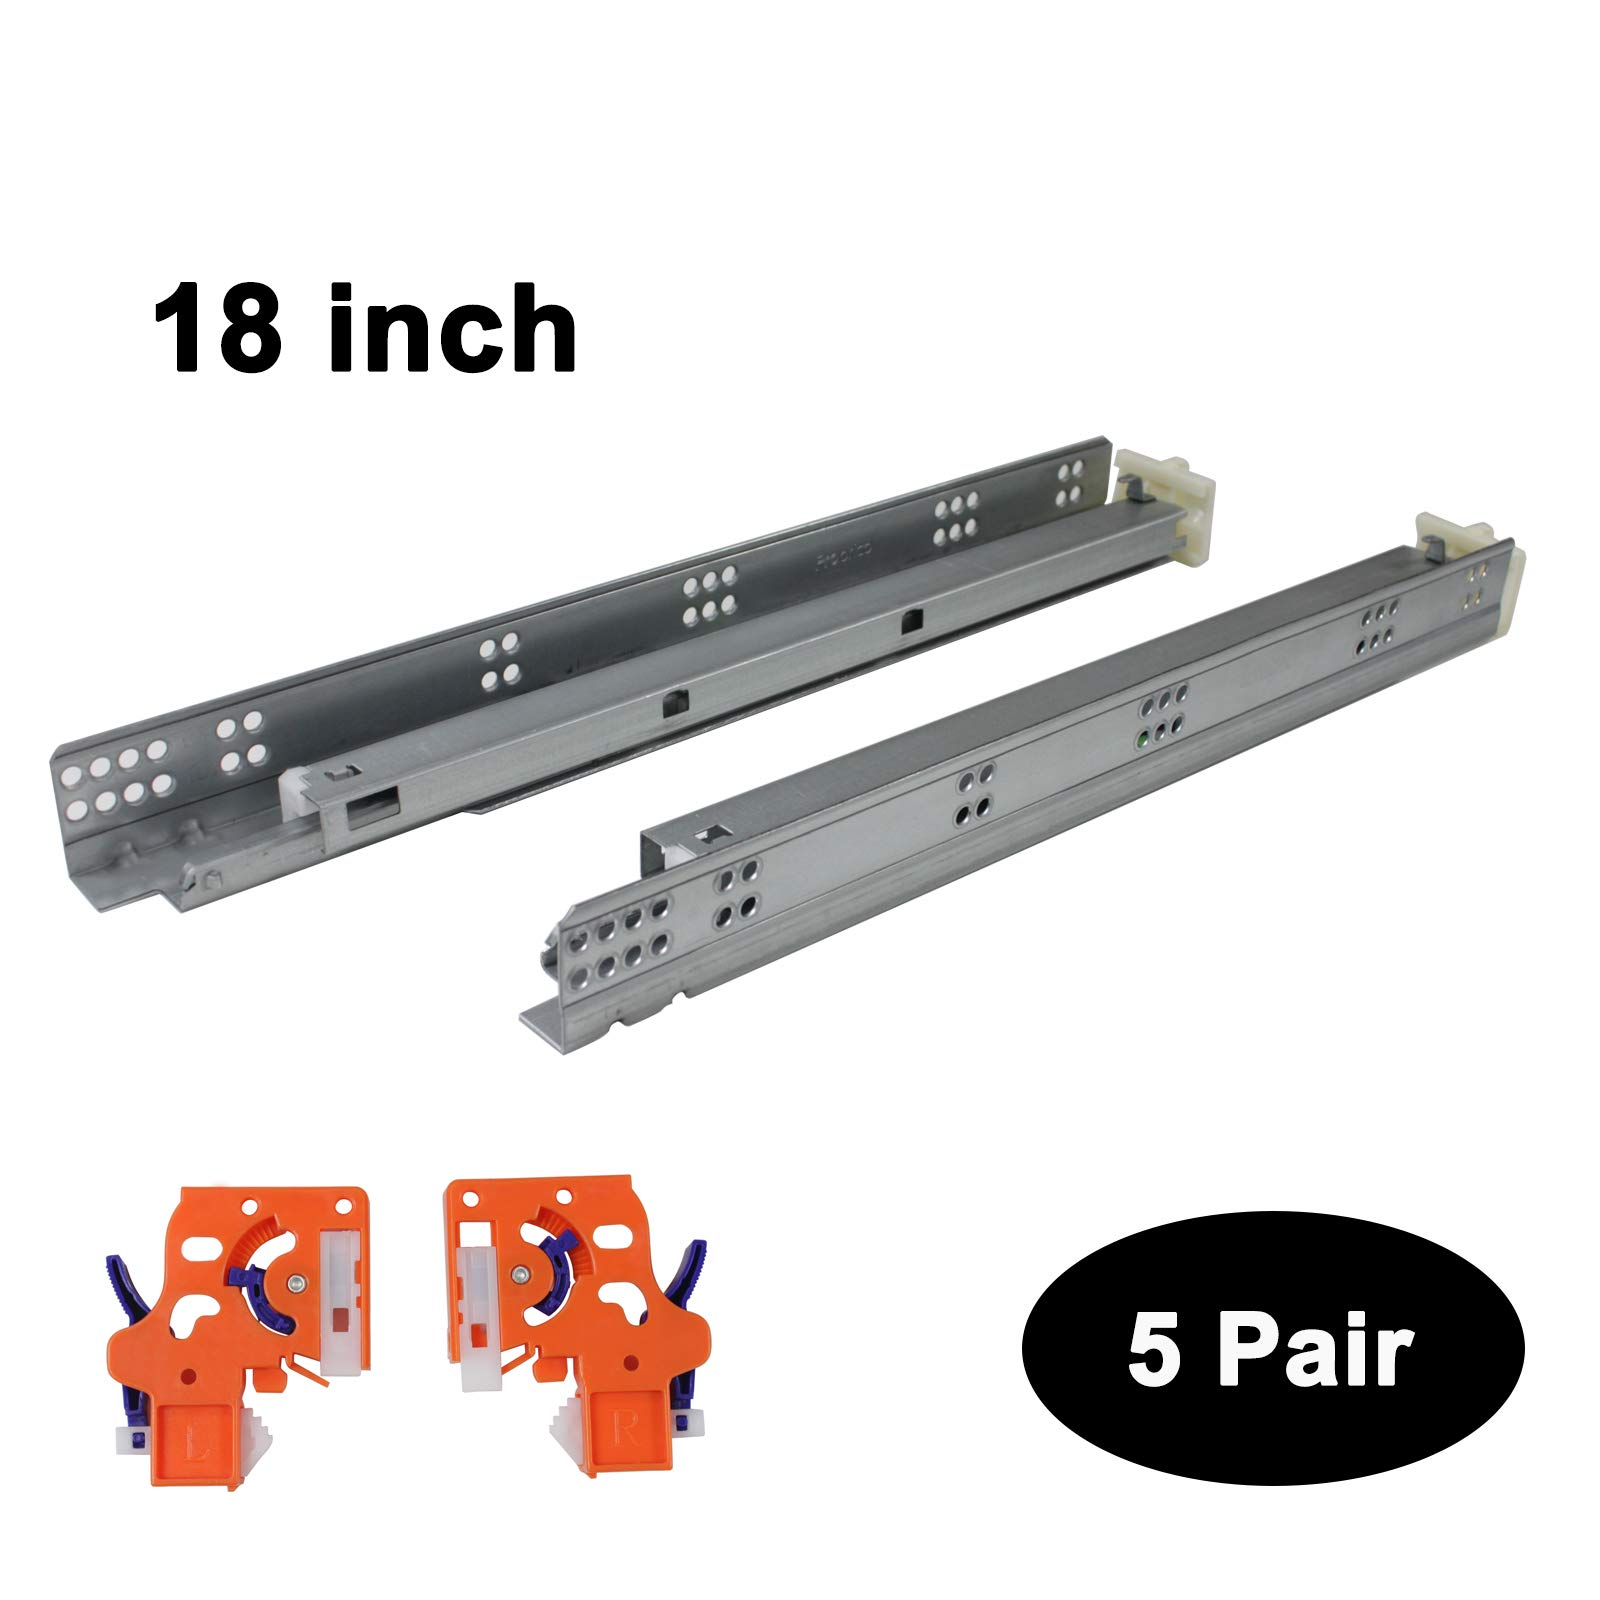 5 Pairs Self Soft Close Under/Bottom Rear Mounting Drawer Slides 18 inch Concealed Drawer Runners;Locking Devices;Rear Mounting Brackets;Screws and Instructions